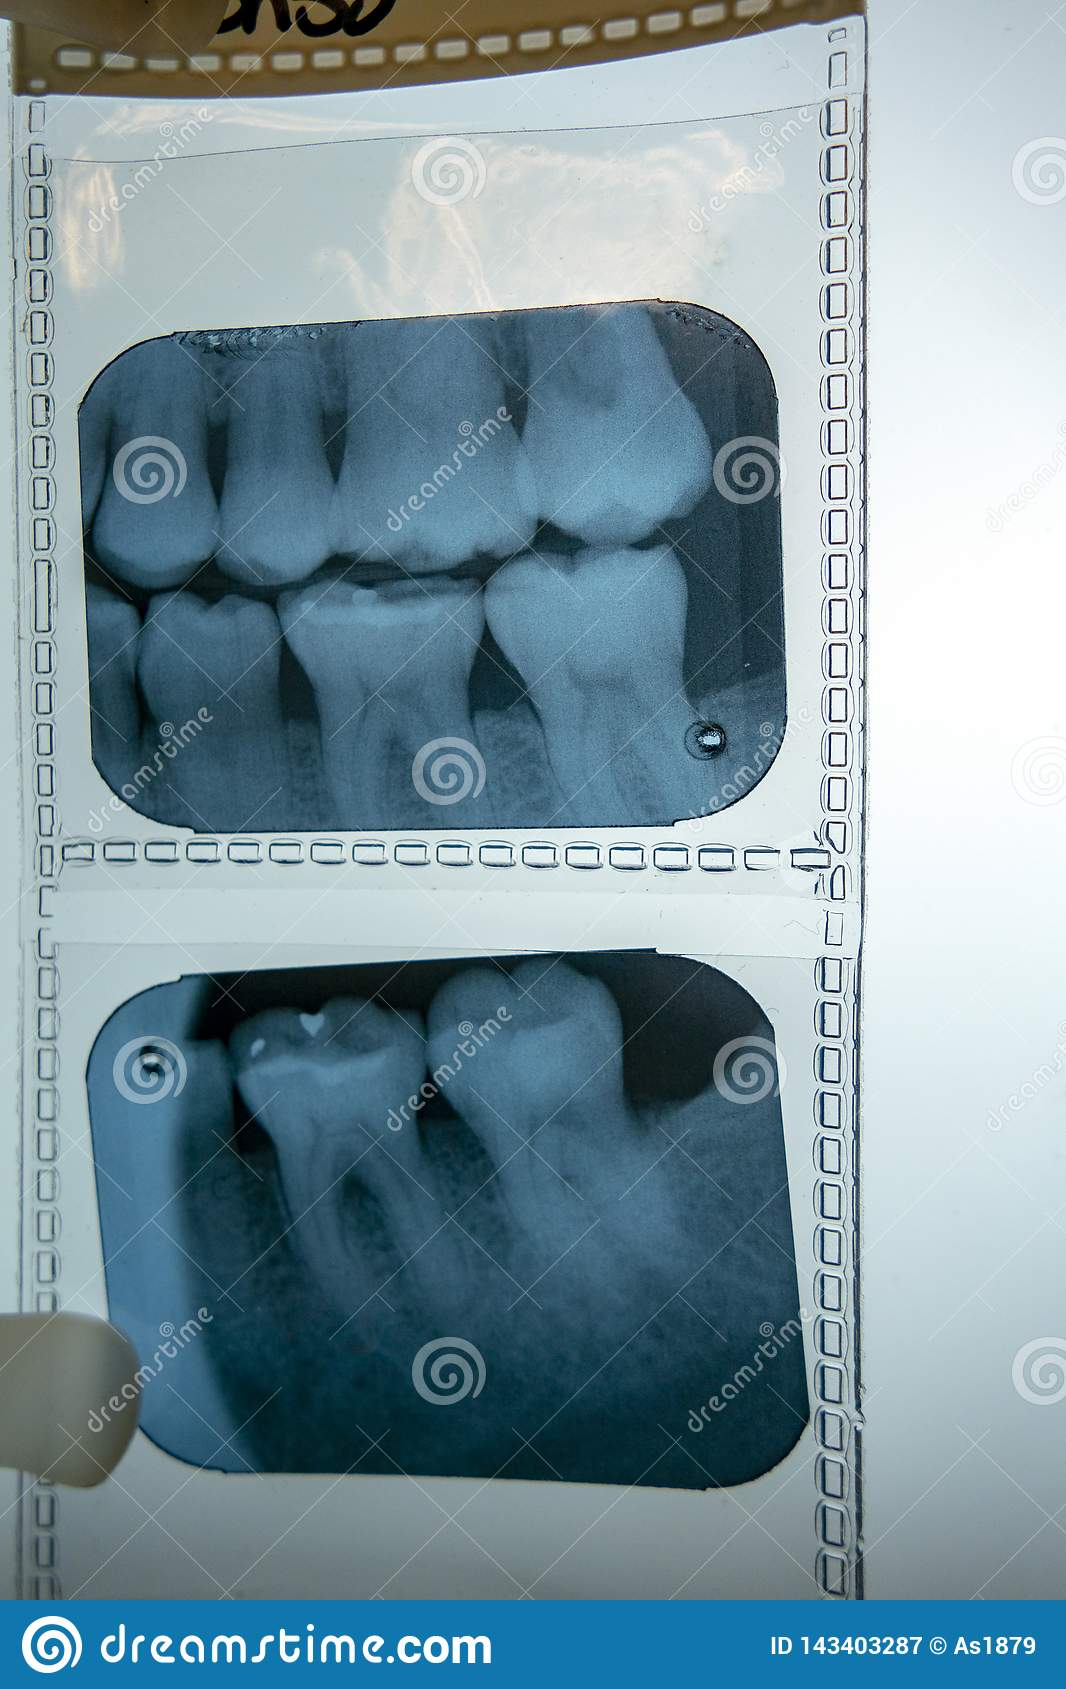 Dentist left side of human first and second molars teeth x-ray scan on a light box